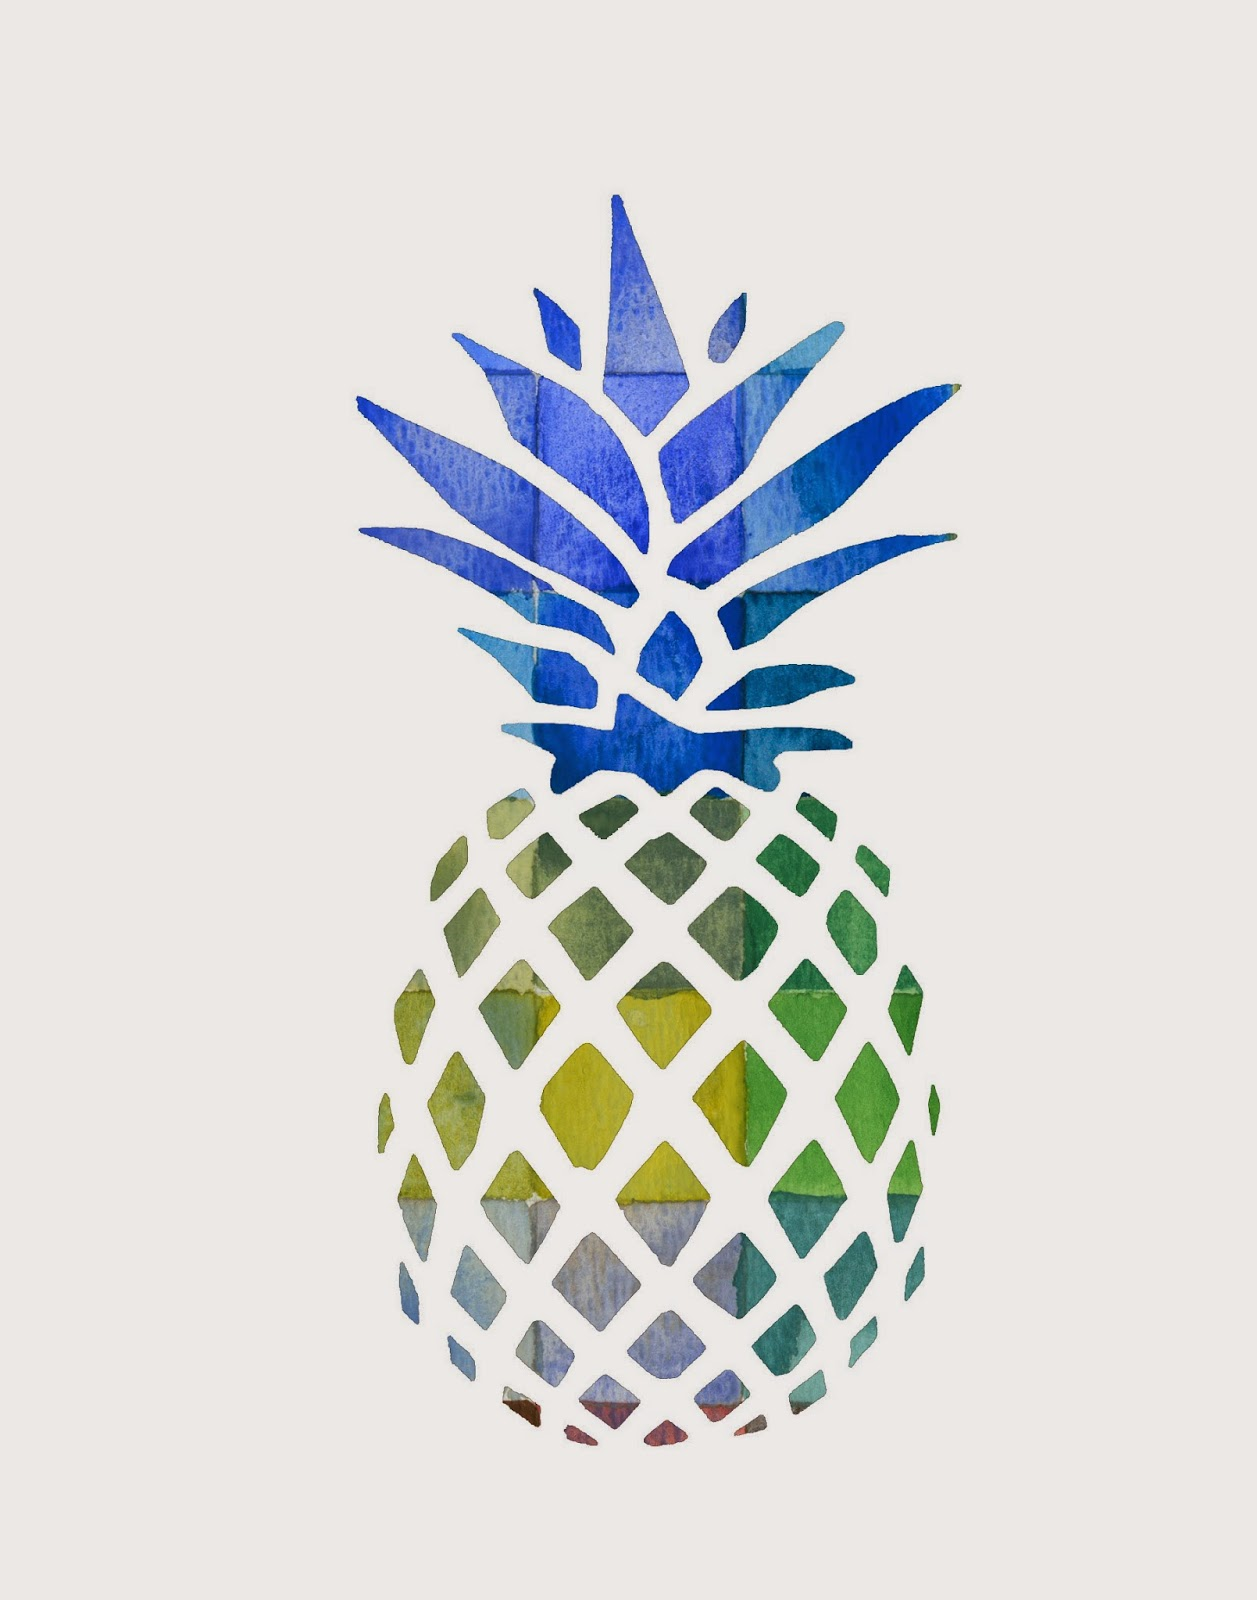 photograph regarding Free Printable Pineapple called Pineapple Printables for Your Subsequent Venture! - The Weathered Fox